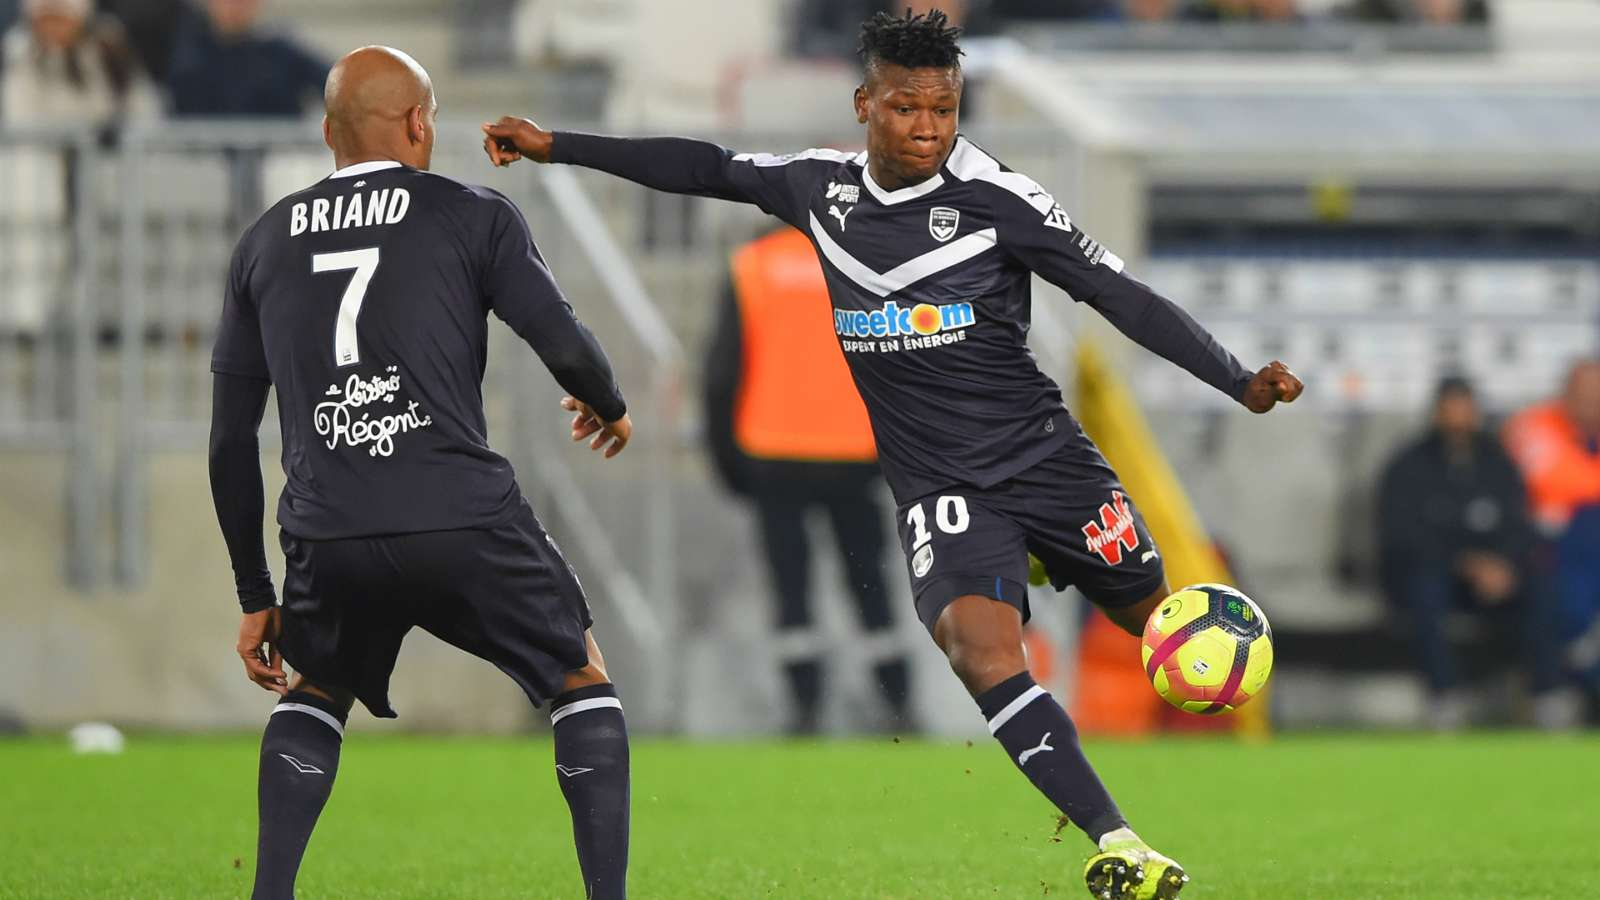 Kalu Happy To Make Bordeaux Return  After Injury Induced Absence